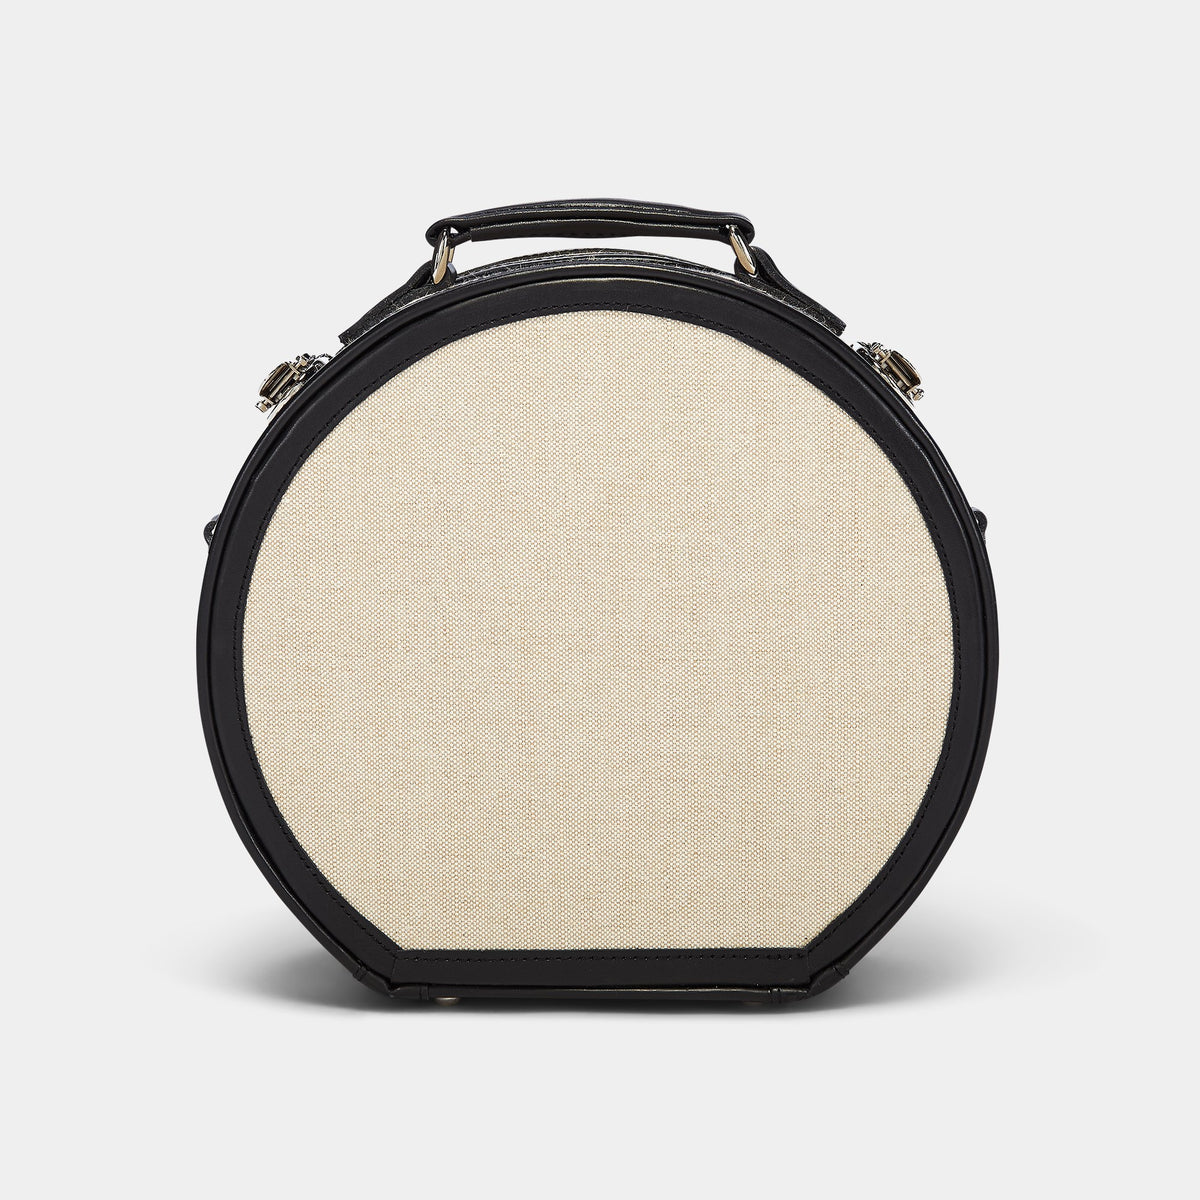 The Editor Hatbox Small in Black - Hat Box Luggage - Exterior Back with Shoulder Strap